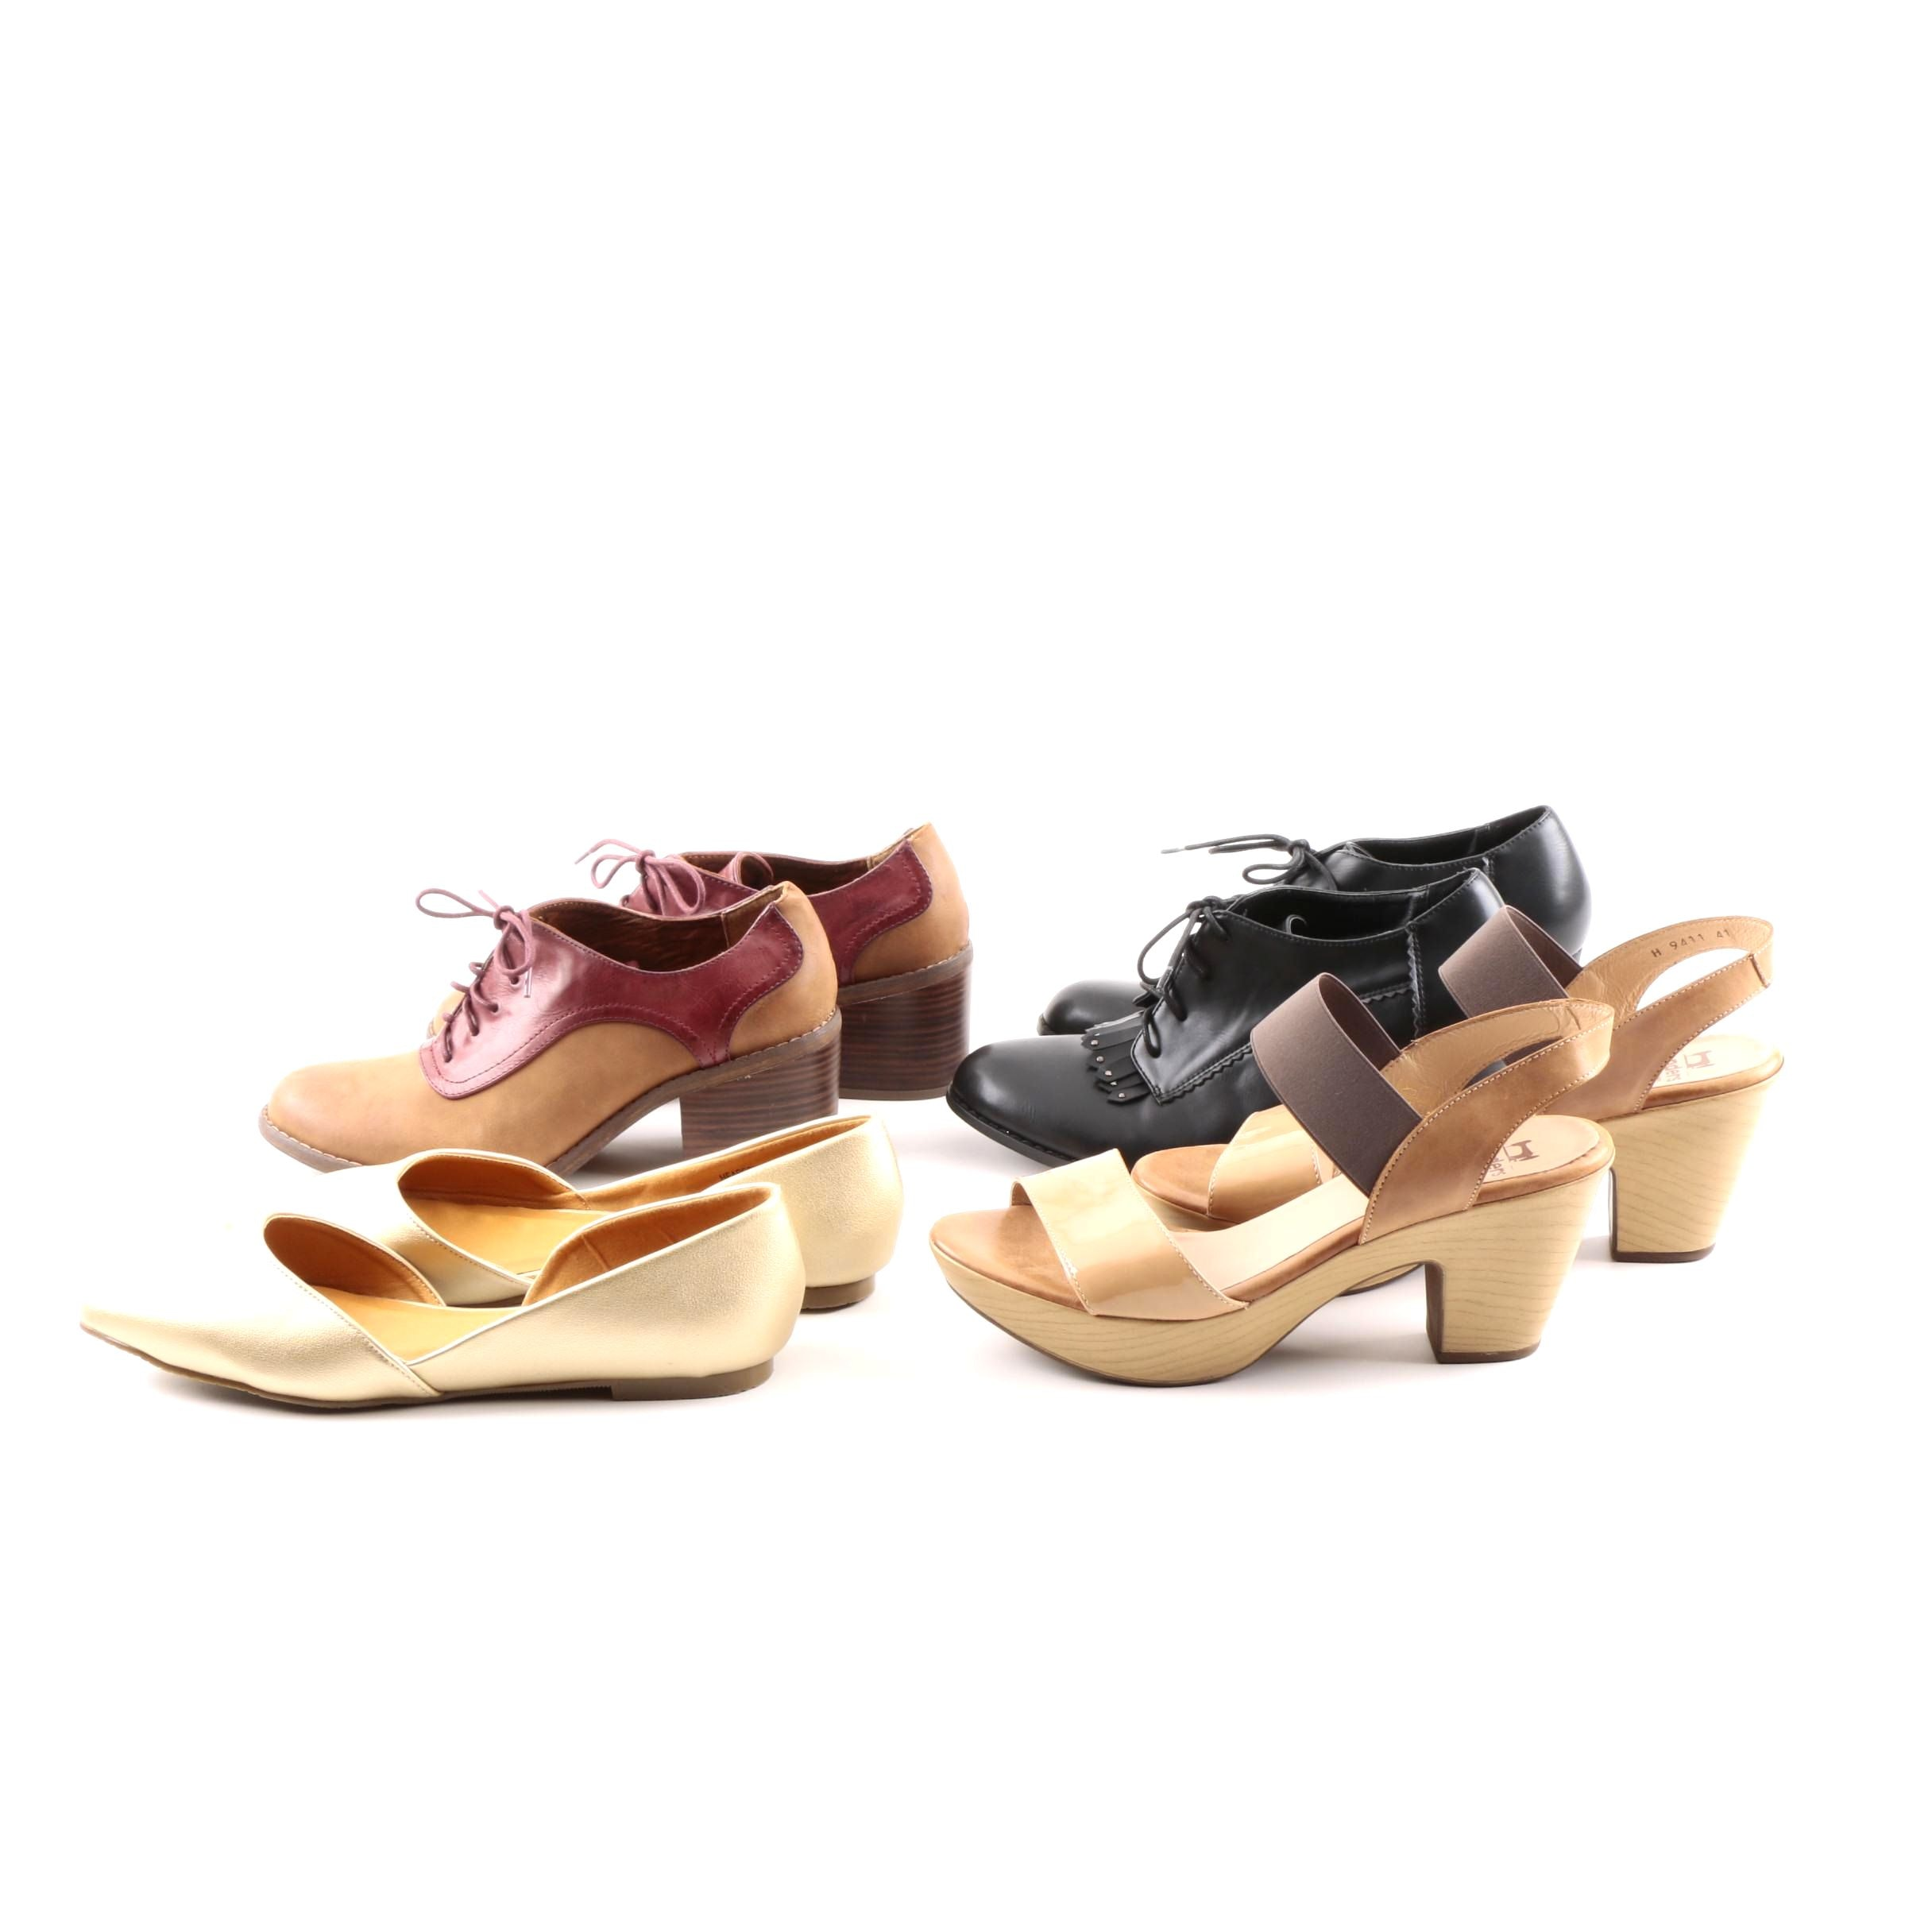 Women's Lace-Up Booties, Flats and Heels